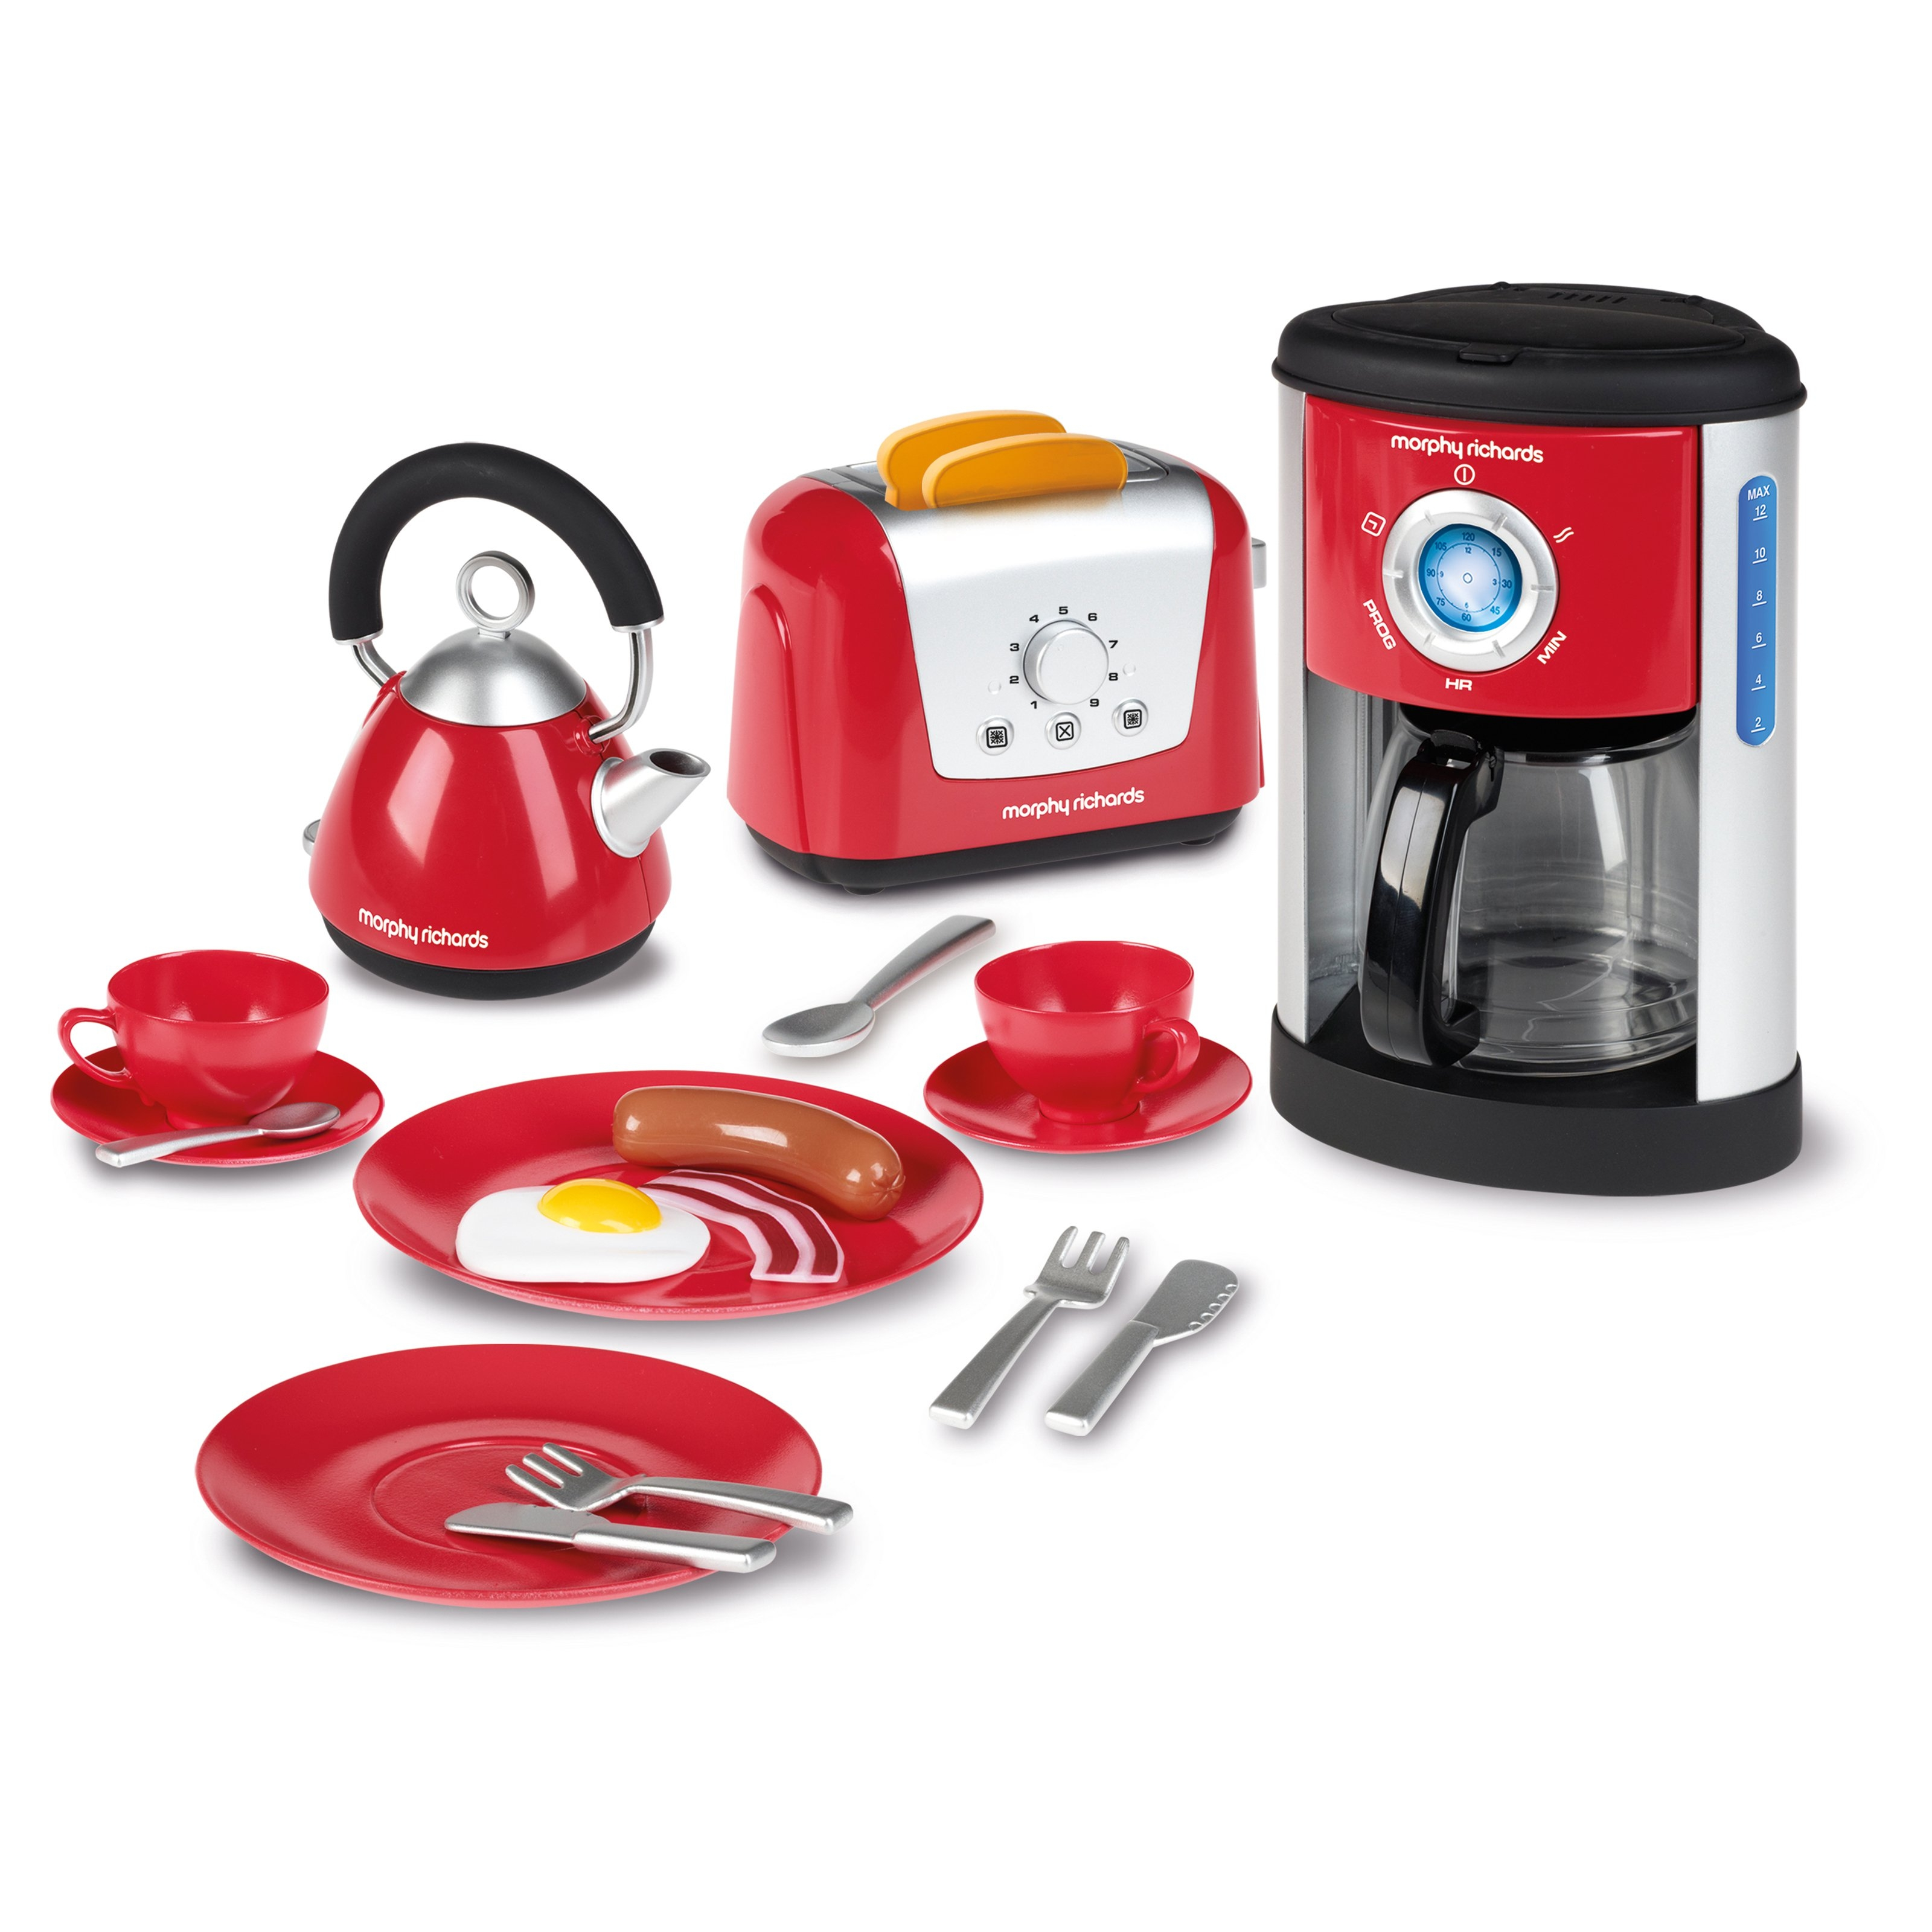 Permalink to Casdon Little Cook Morphy Richards Kitchen Set